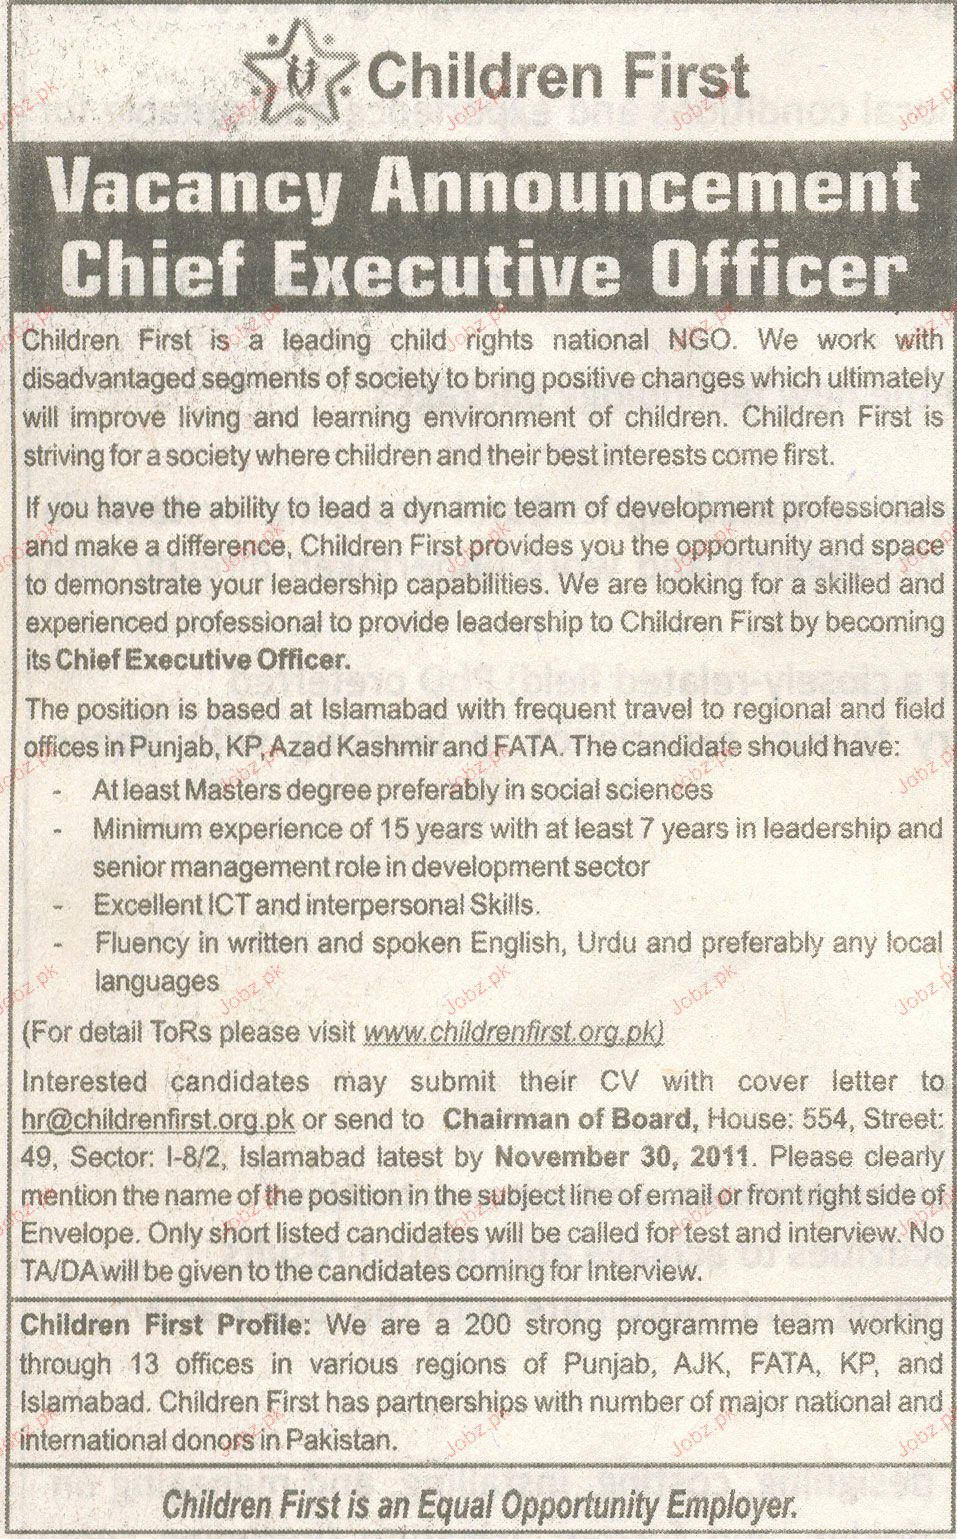 Chief Executive Officer Job Opportunity